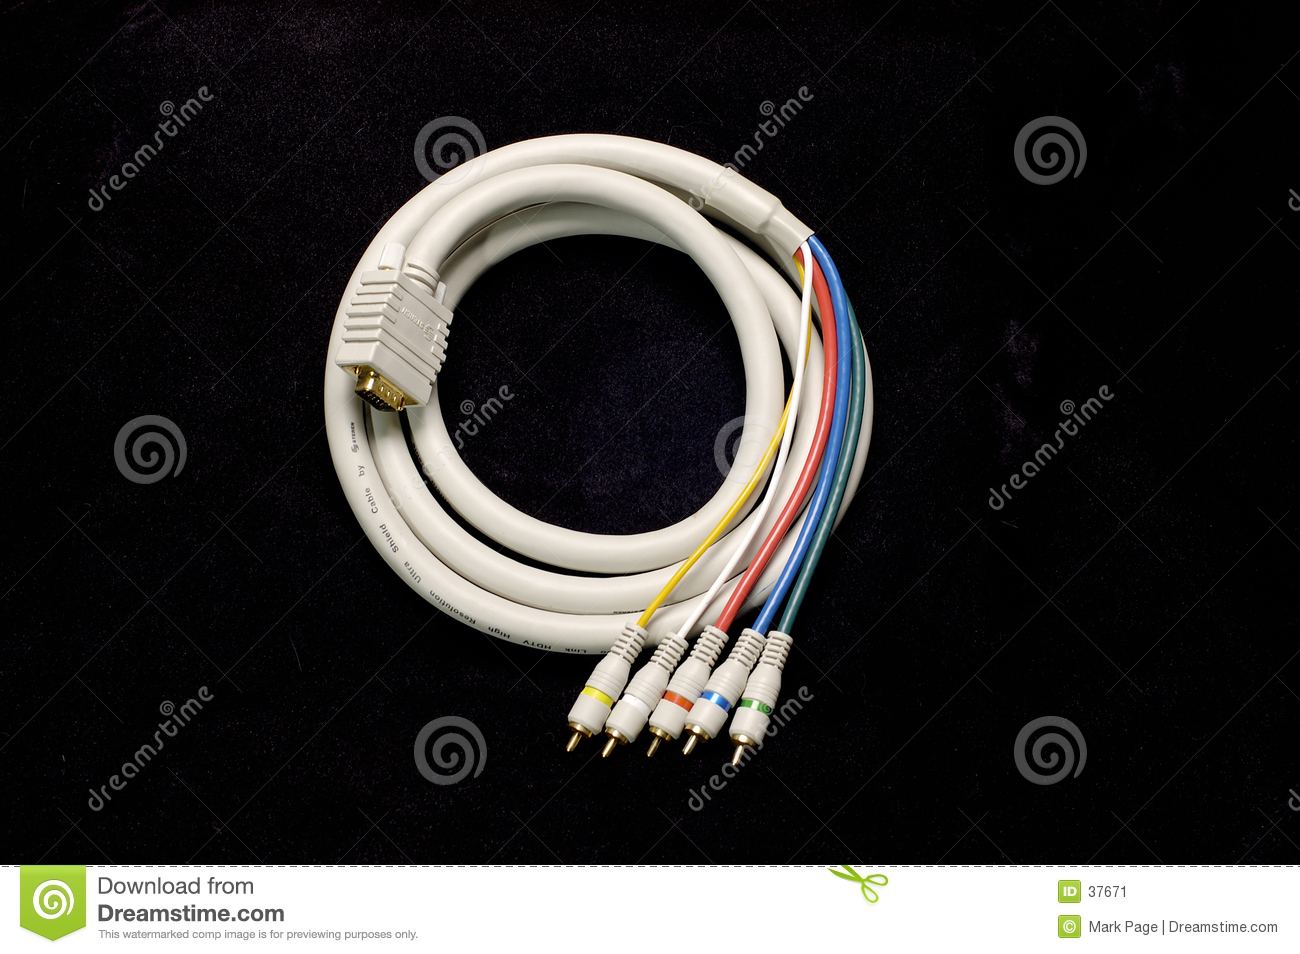 Cable hdtv